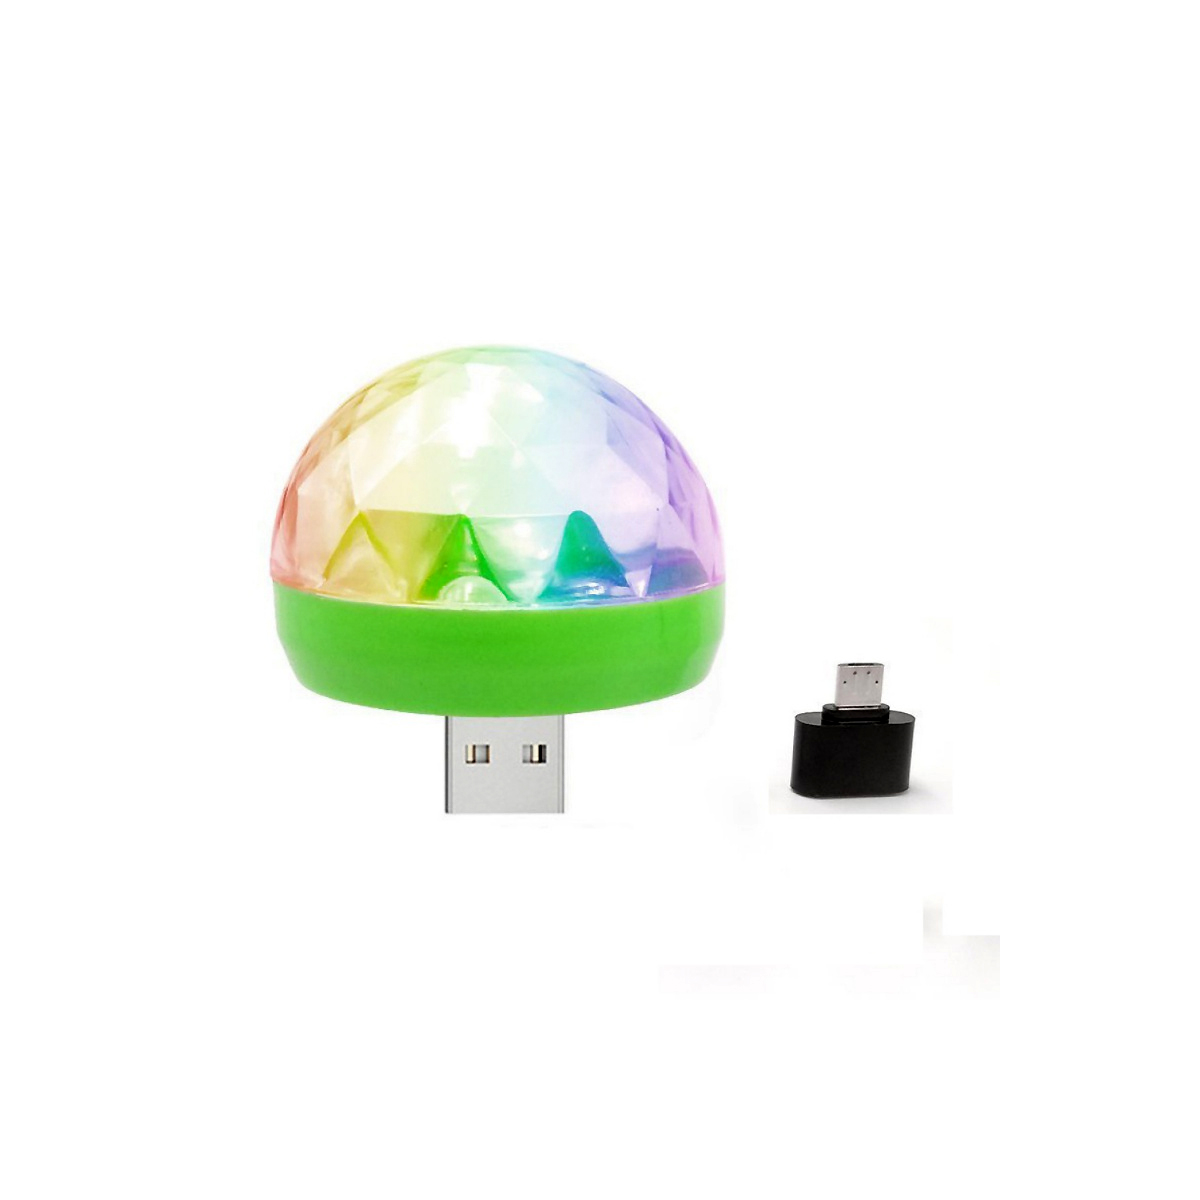 IAG-USB-Disco-Ball-Magic-Light-Show-1-1200×1200